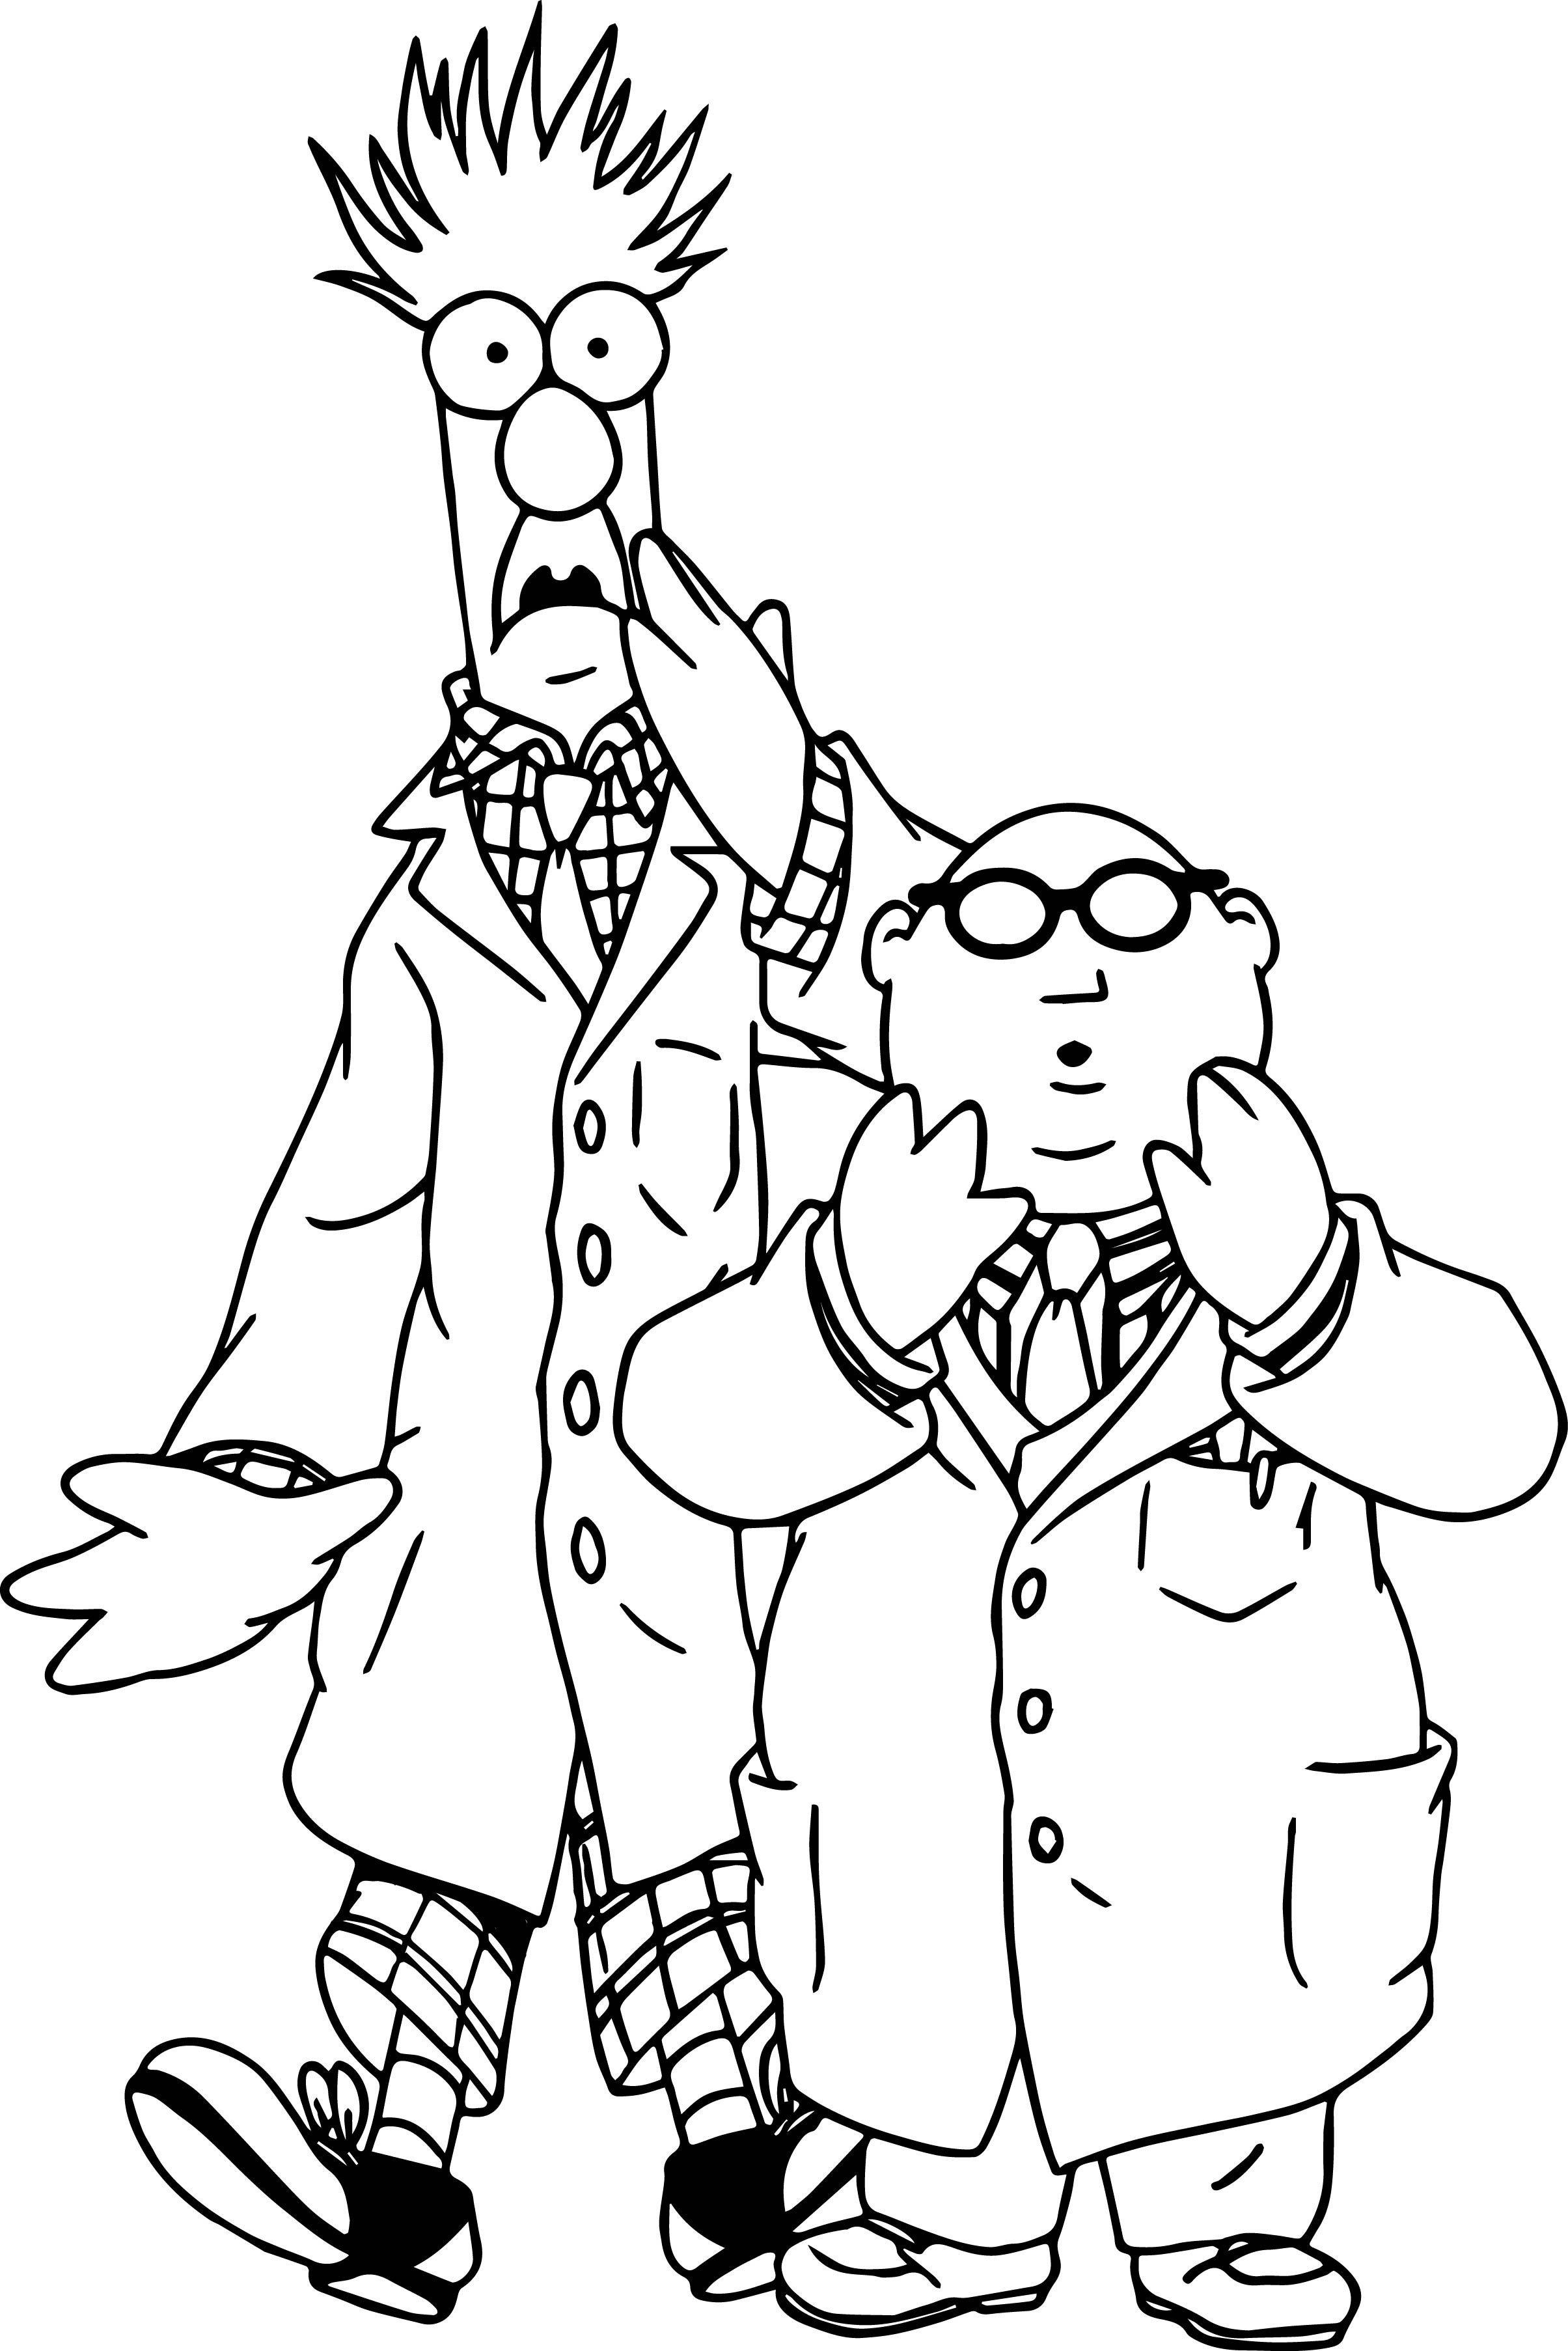 Muppets Coloring Book Pages  The Muppets Beaker Bunsen Honeydew Shocking Coloring Pages